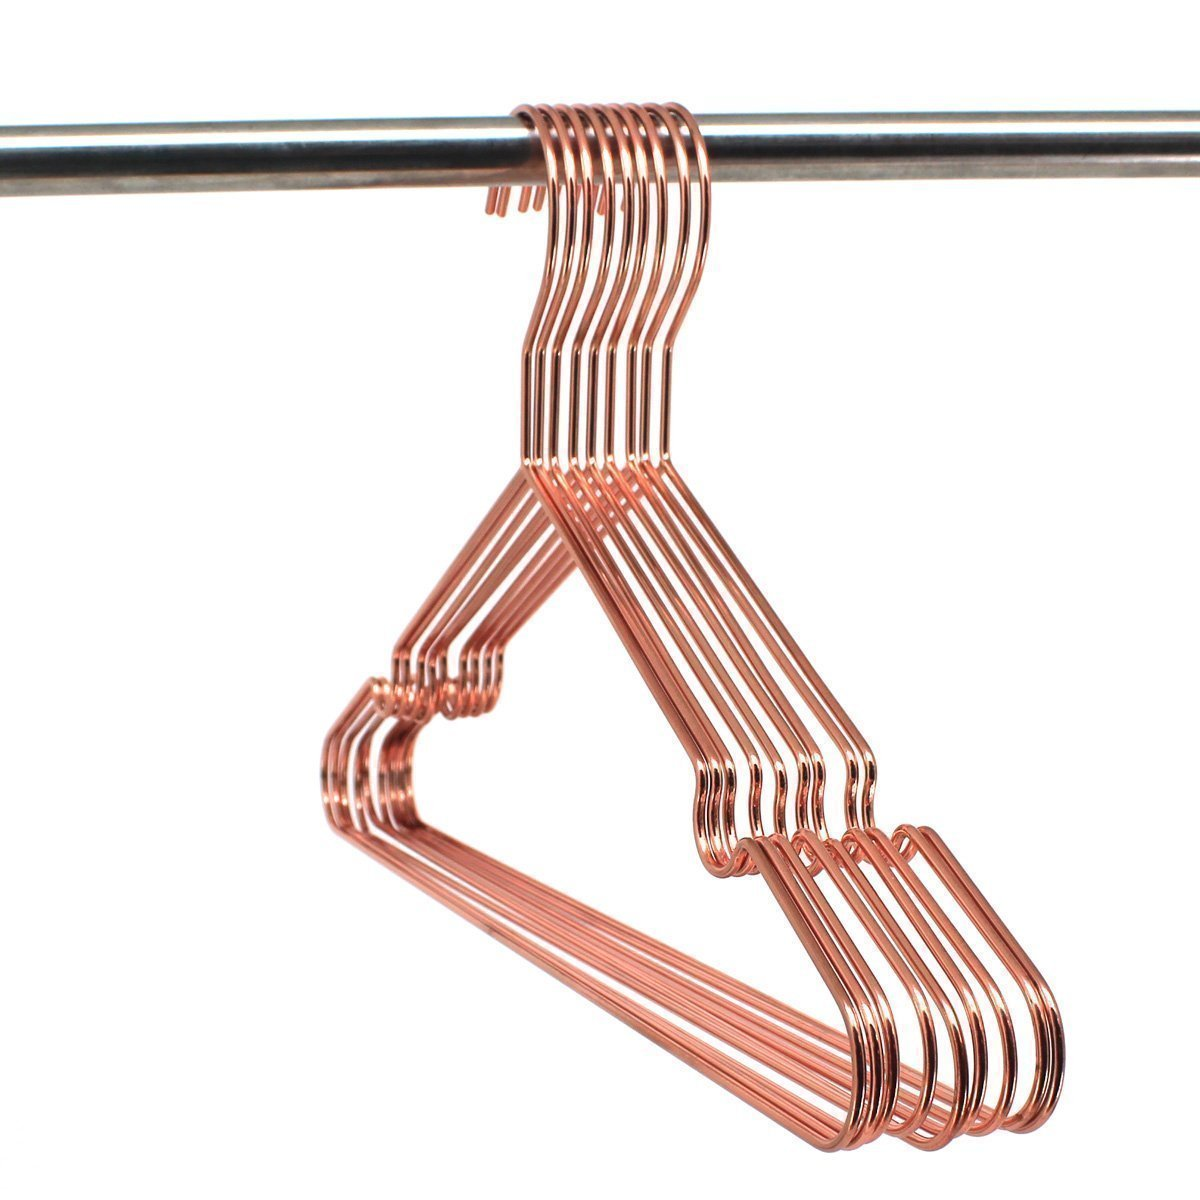 Amazon koobay 30pack 17 rose shiny copper clothes metal wire hanging hangers for shirts coat storage display